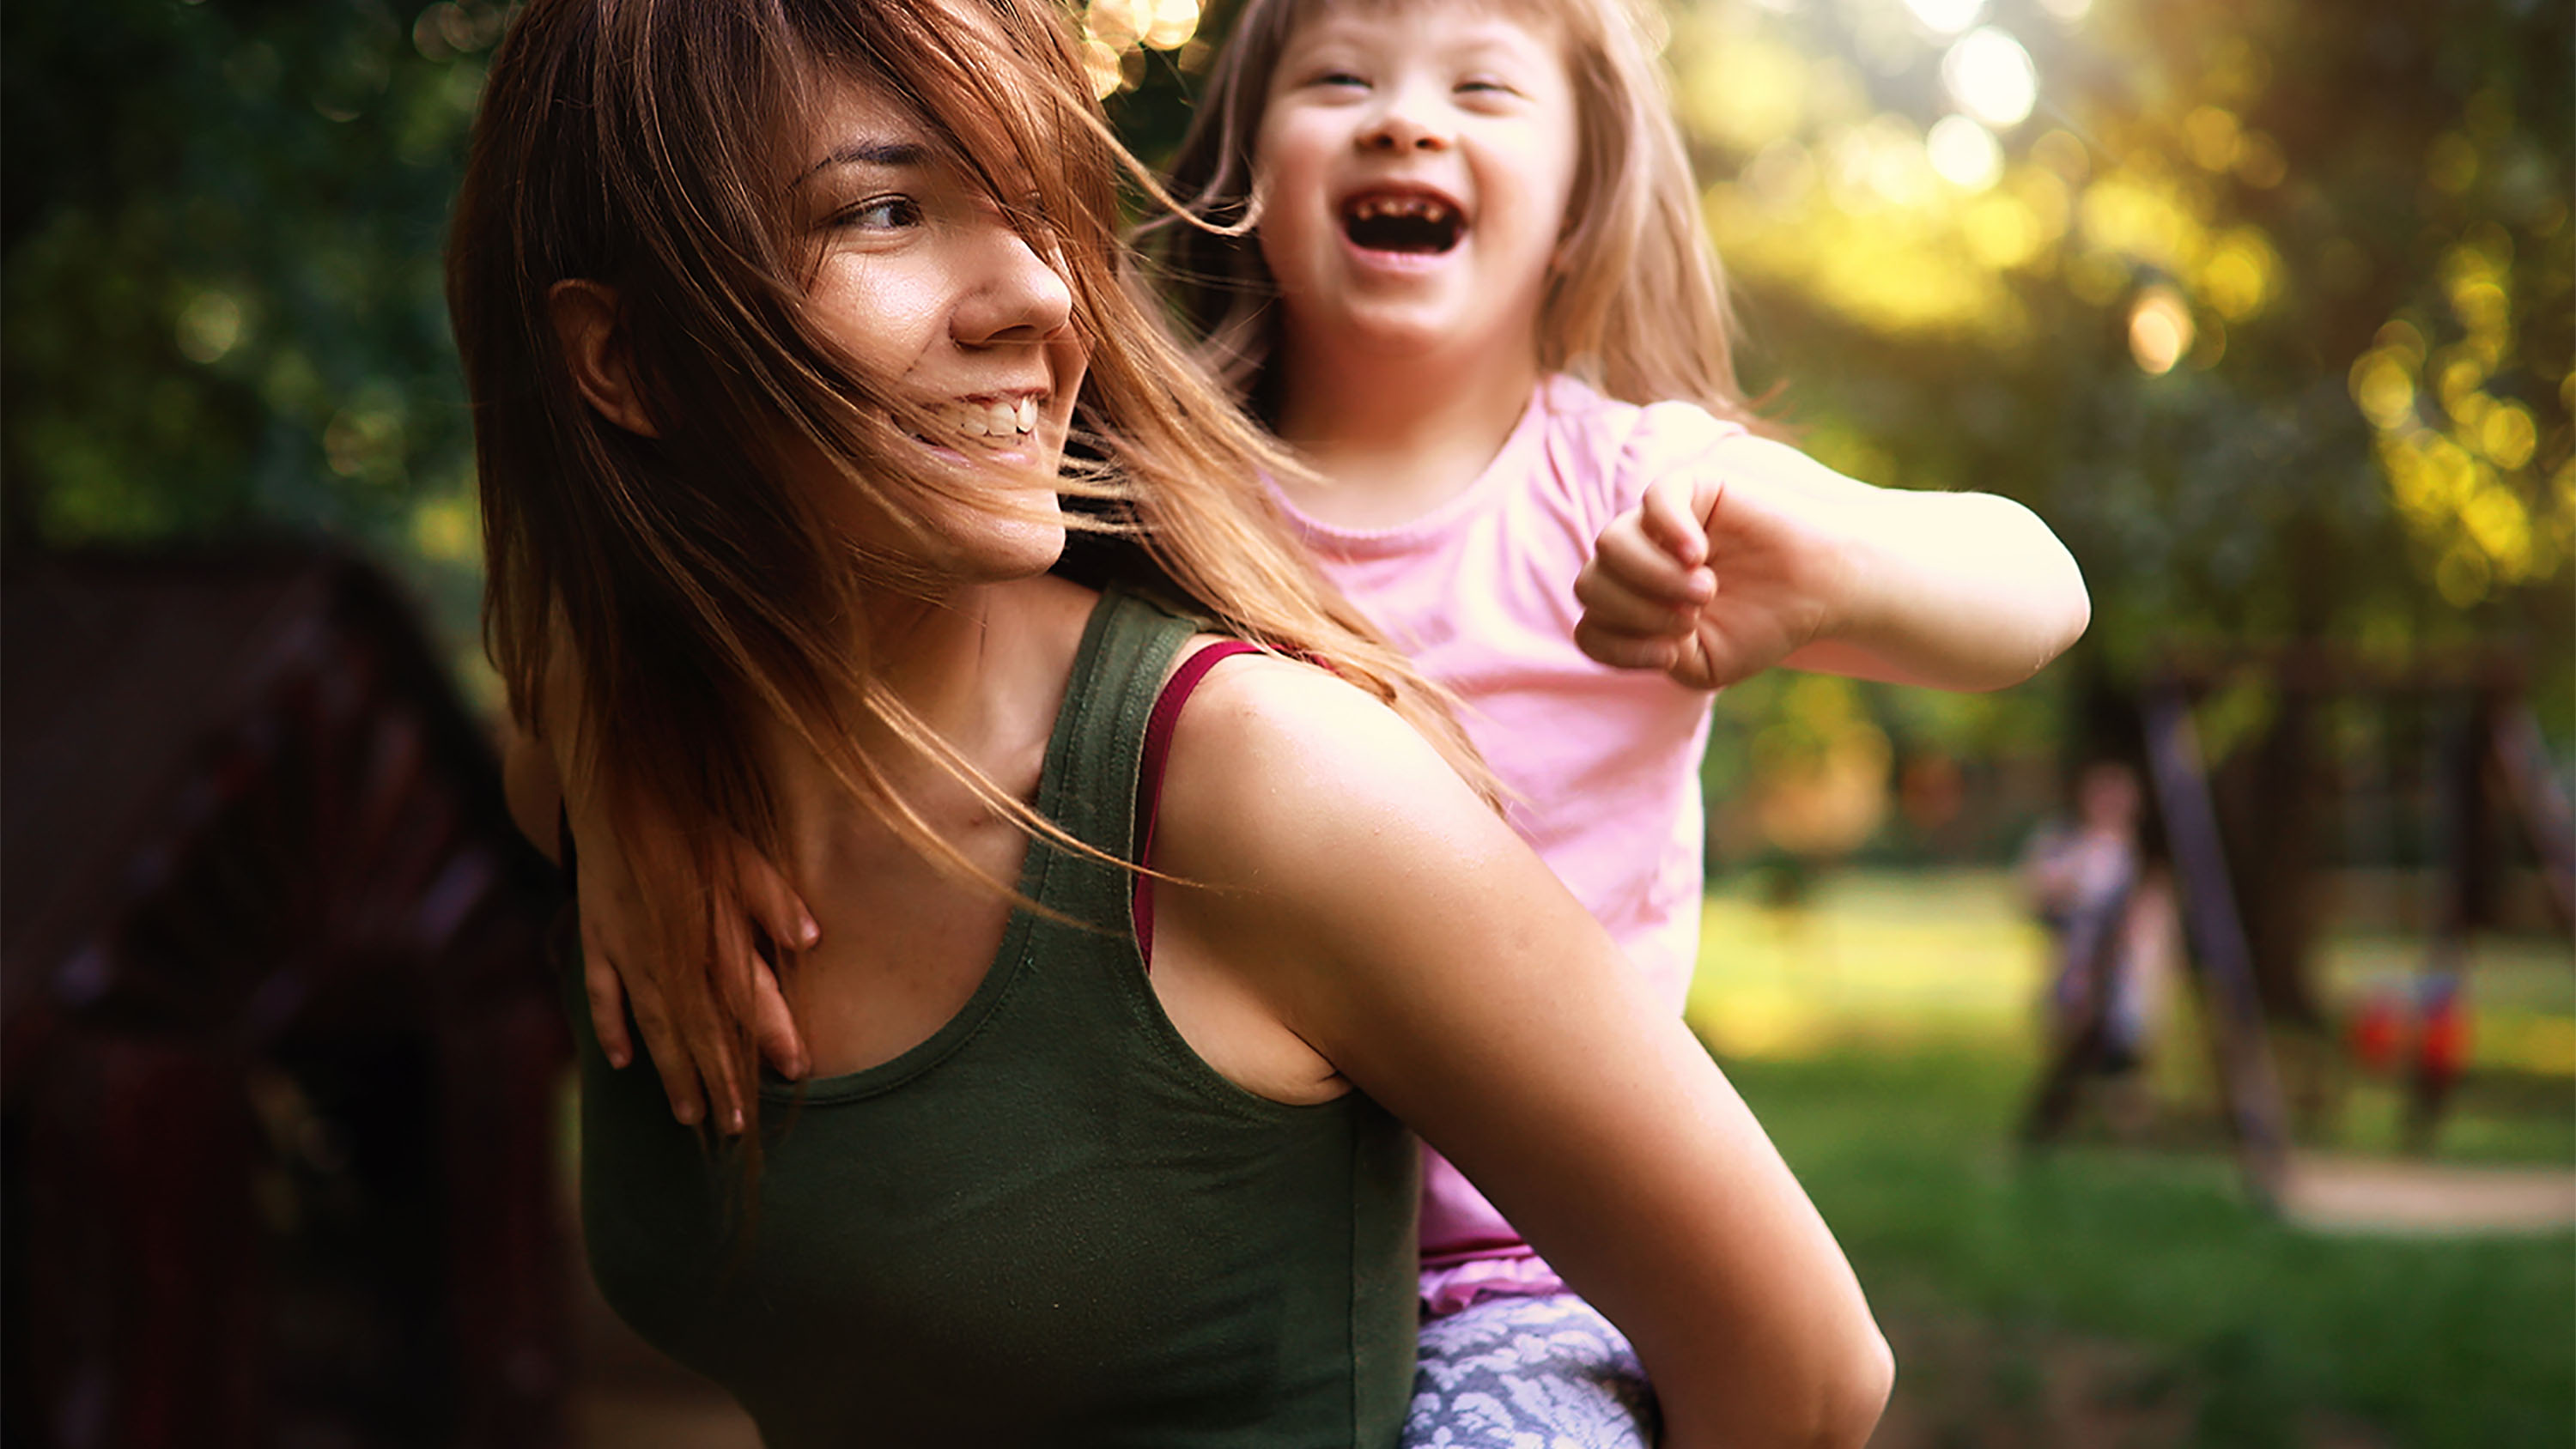 A woman demonstrates God's love for the disabled. Little girl with special needs enjoy spending time with mother